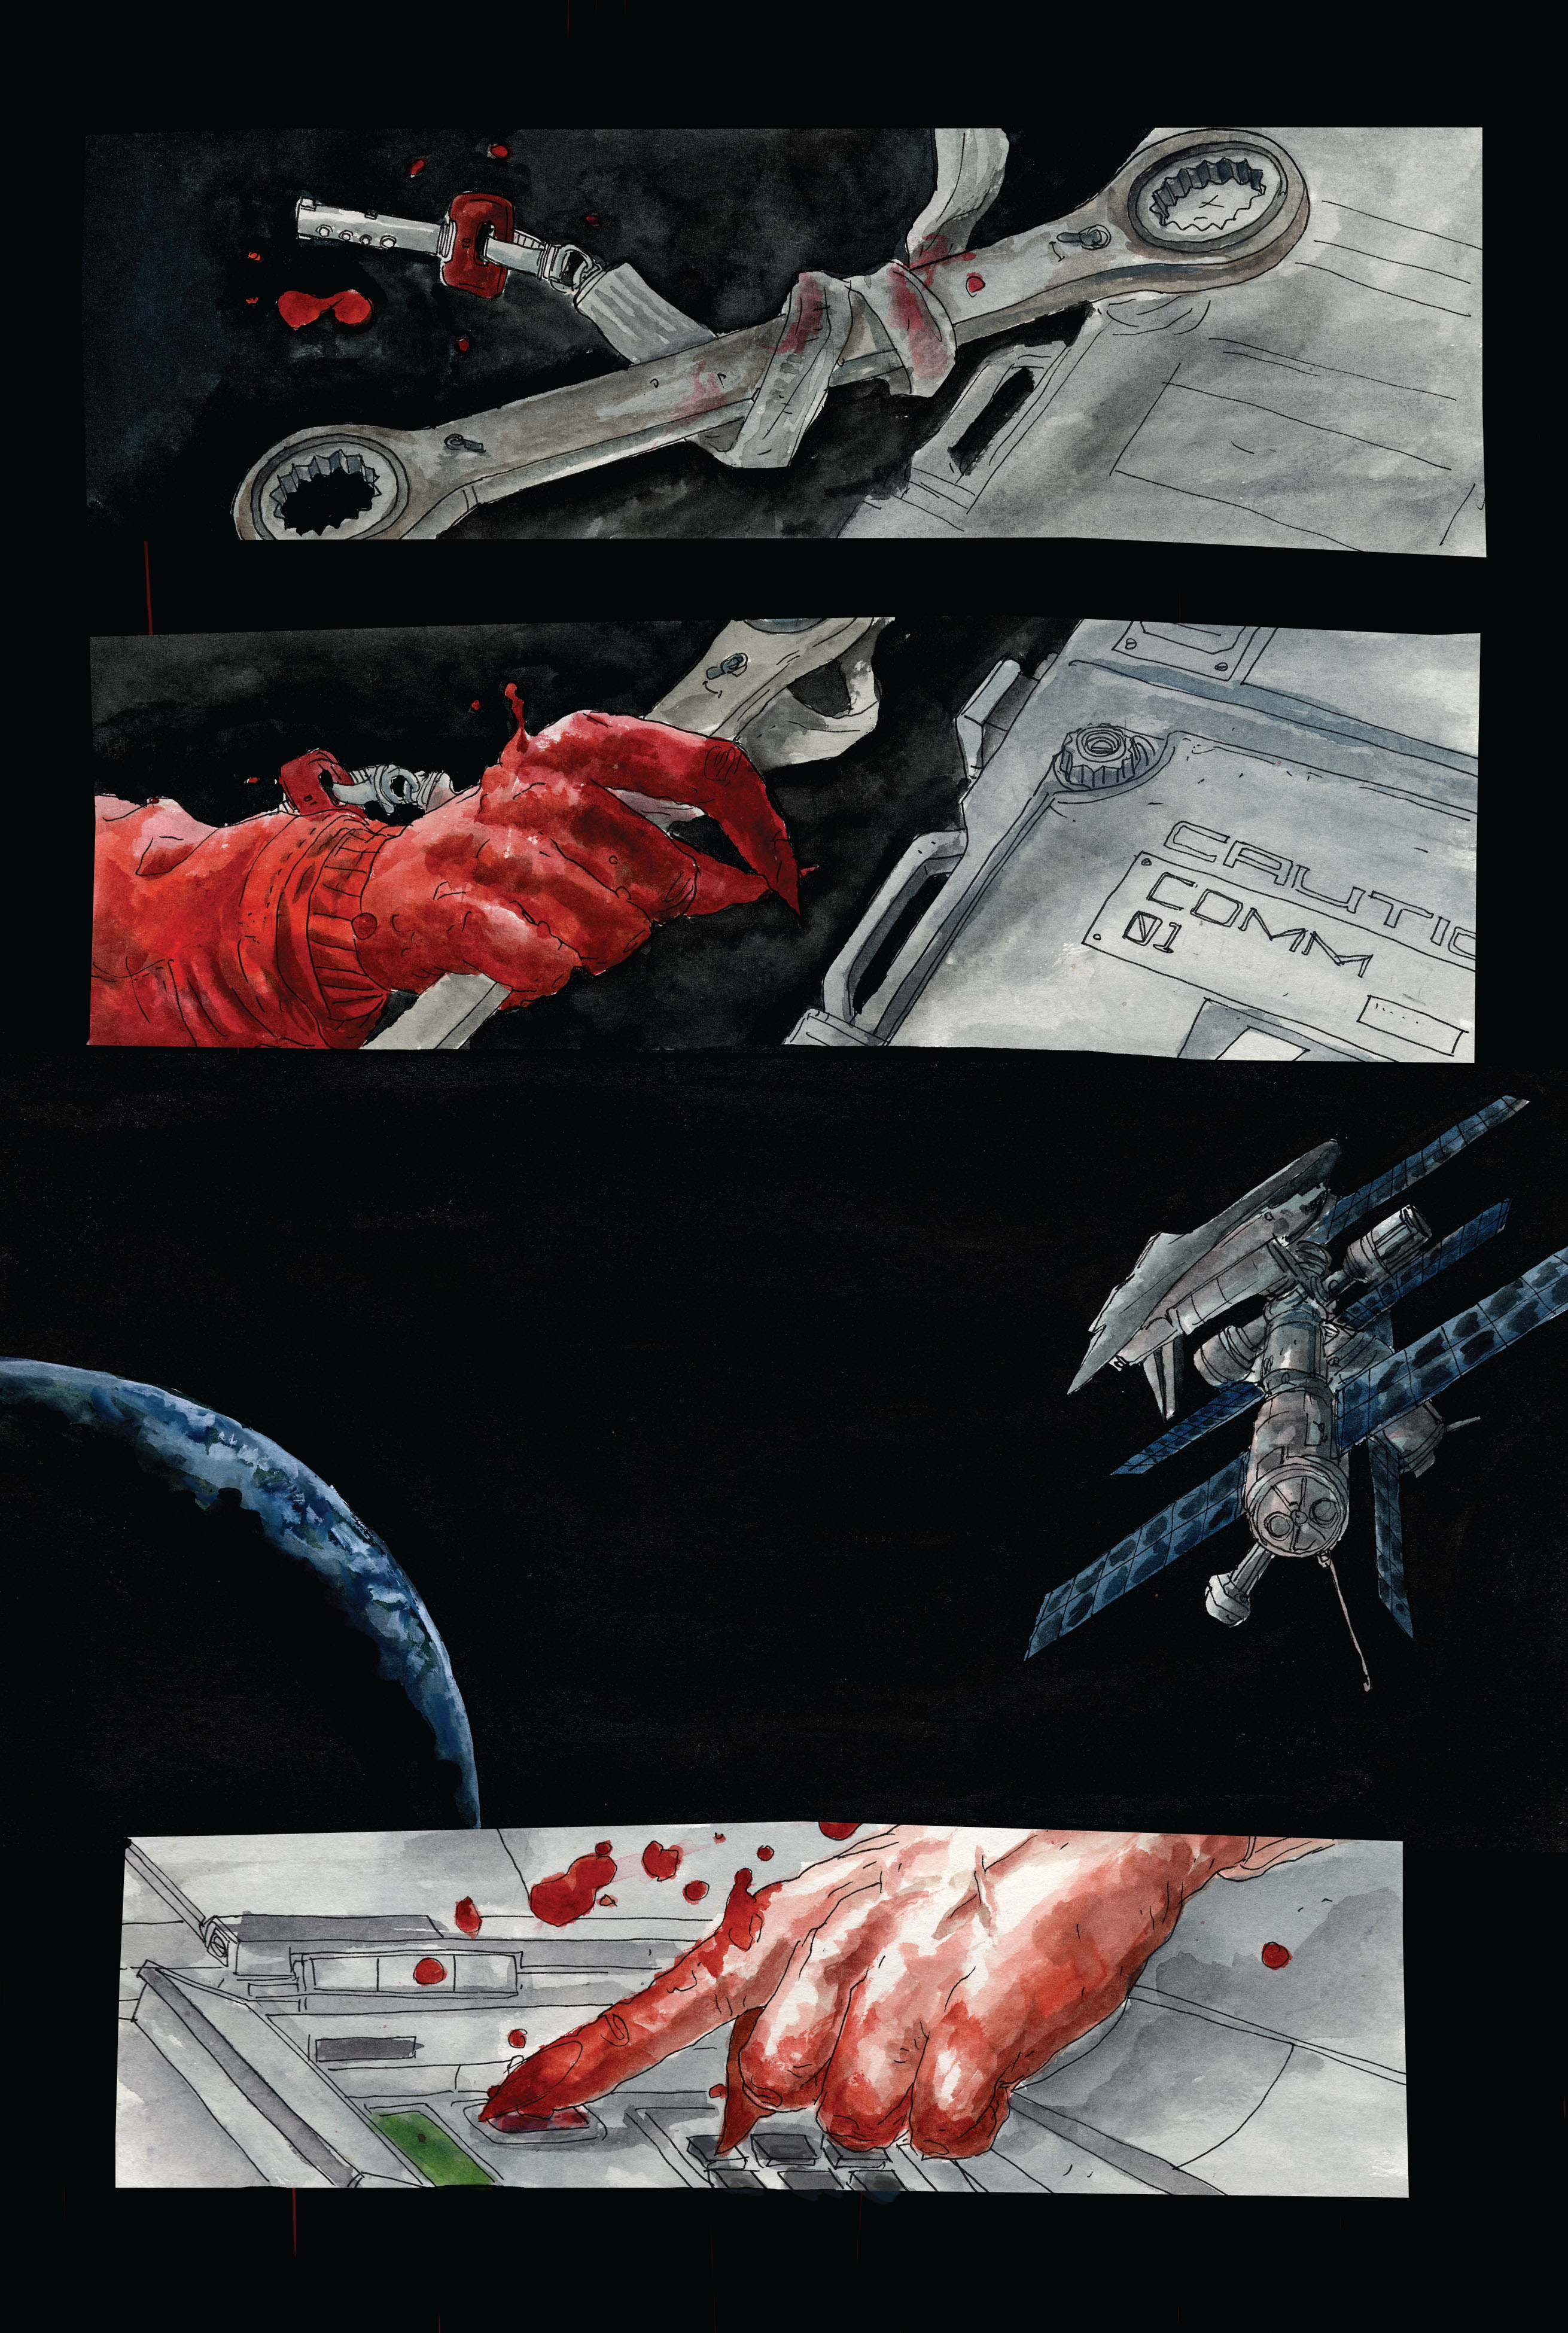 30 Days of Night: Dead Space 3 Page 14